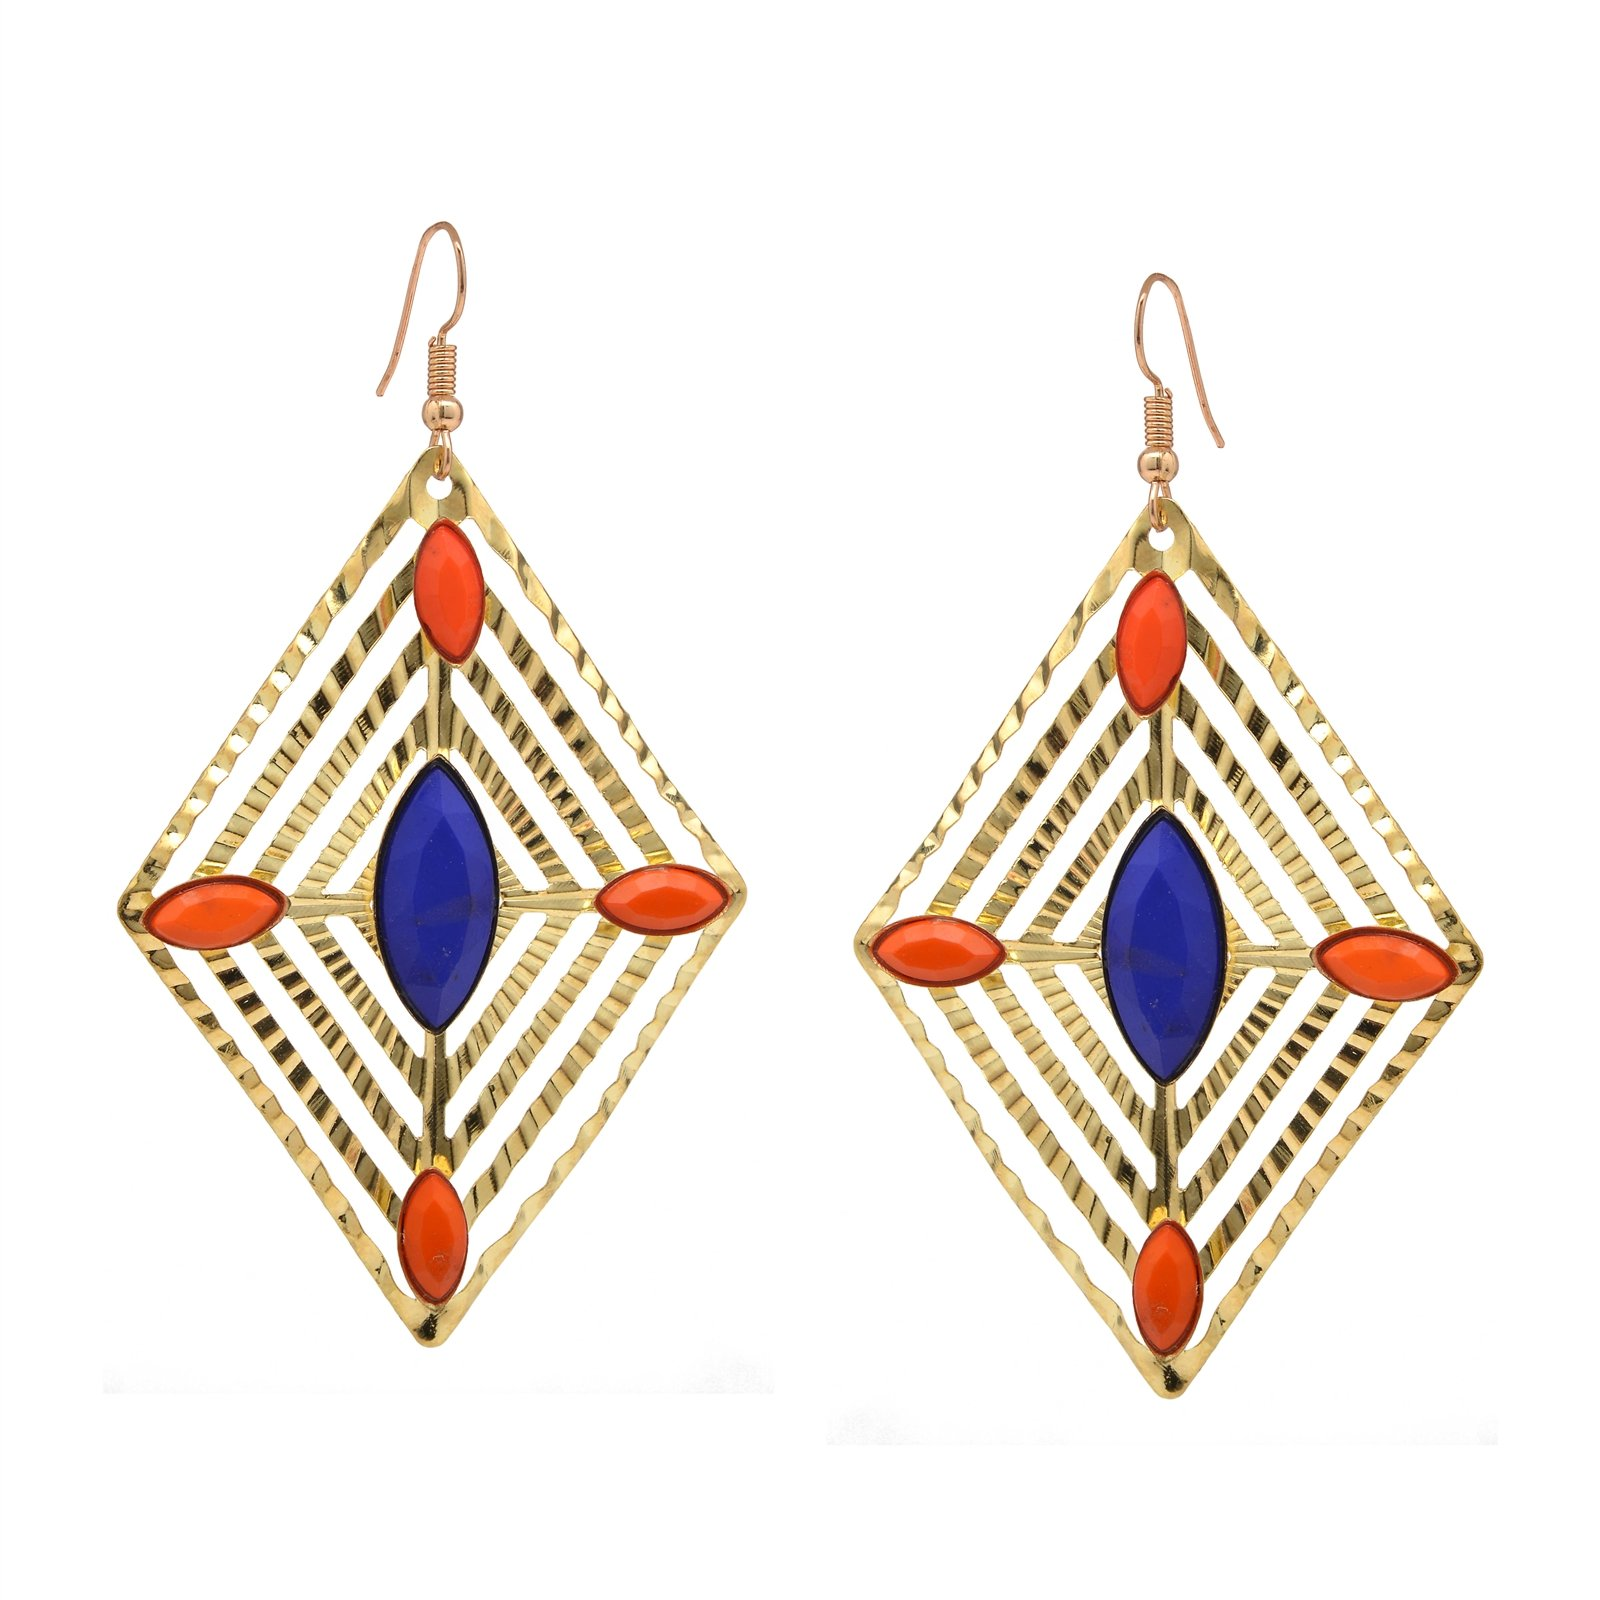 Oreleaa Earrings Blue & Orange Beaded Golden Metal Dangle Carved Diamond Shaped For Women and Girls